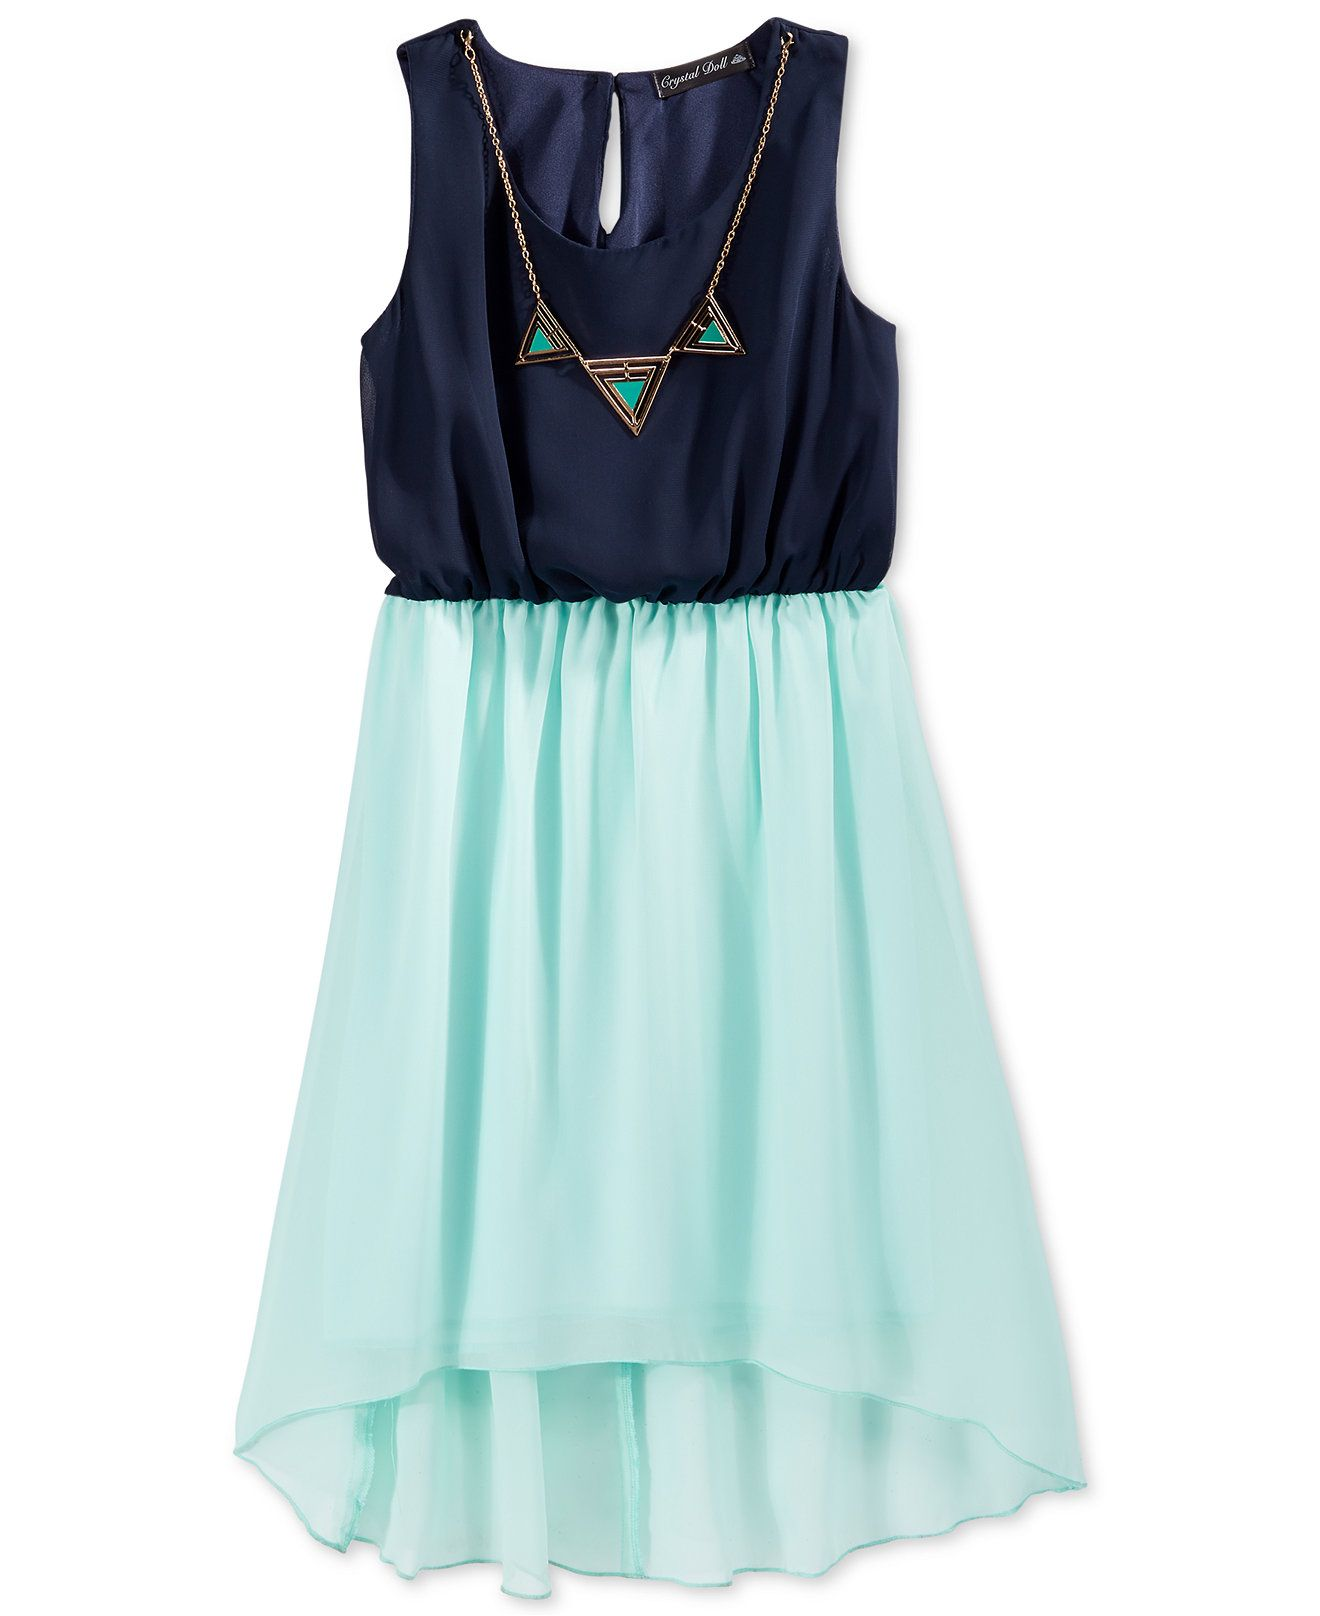 2118ae8cc Crystal Doll Girls' Chiffon High-Low Dress with Necklace - Sale & Clearance  - Kids & Baby - Macy's